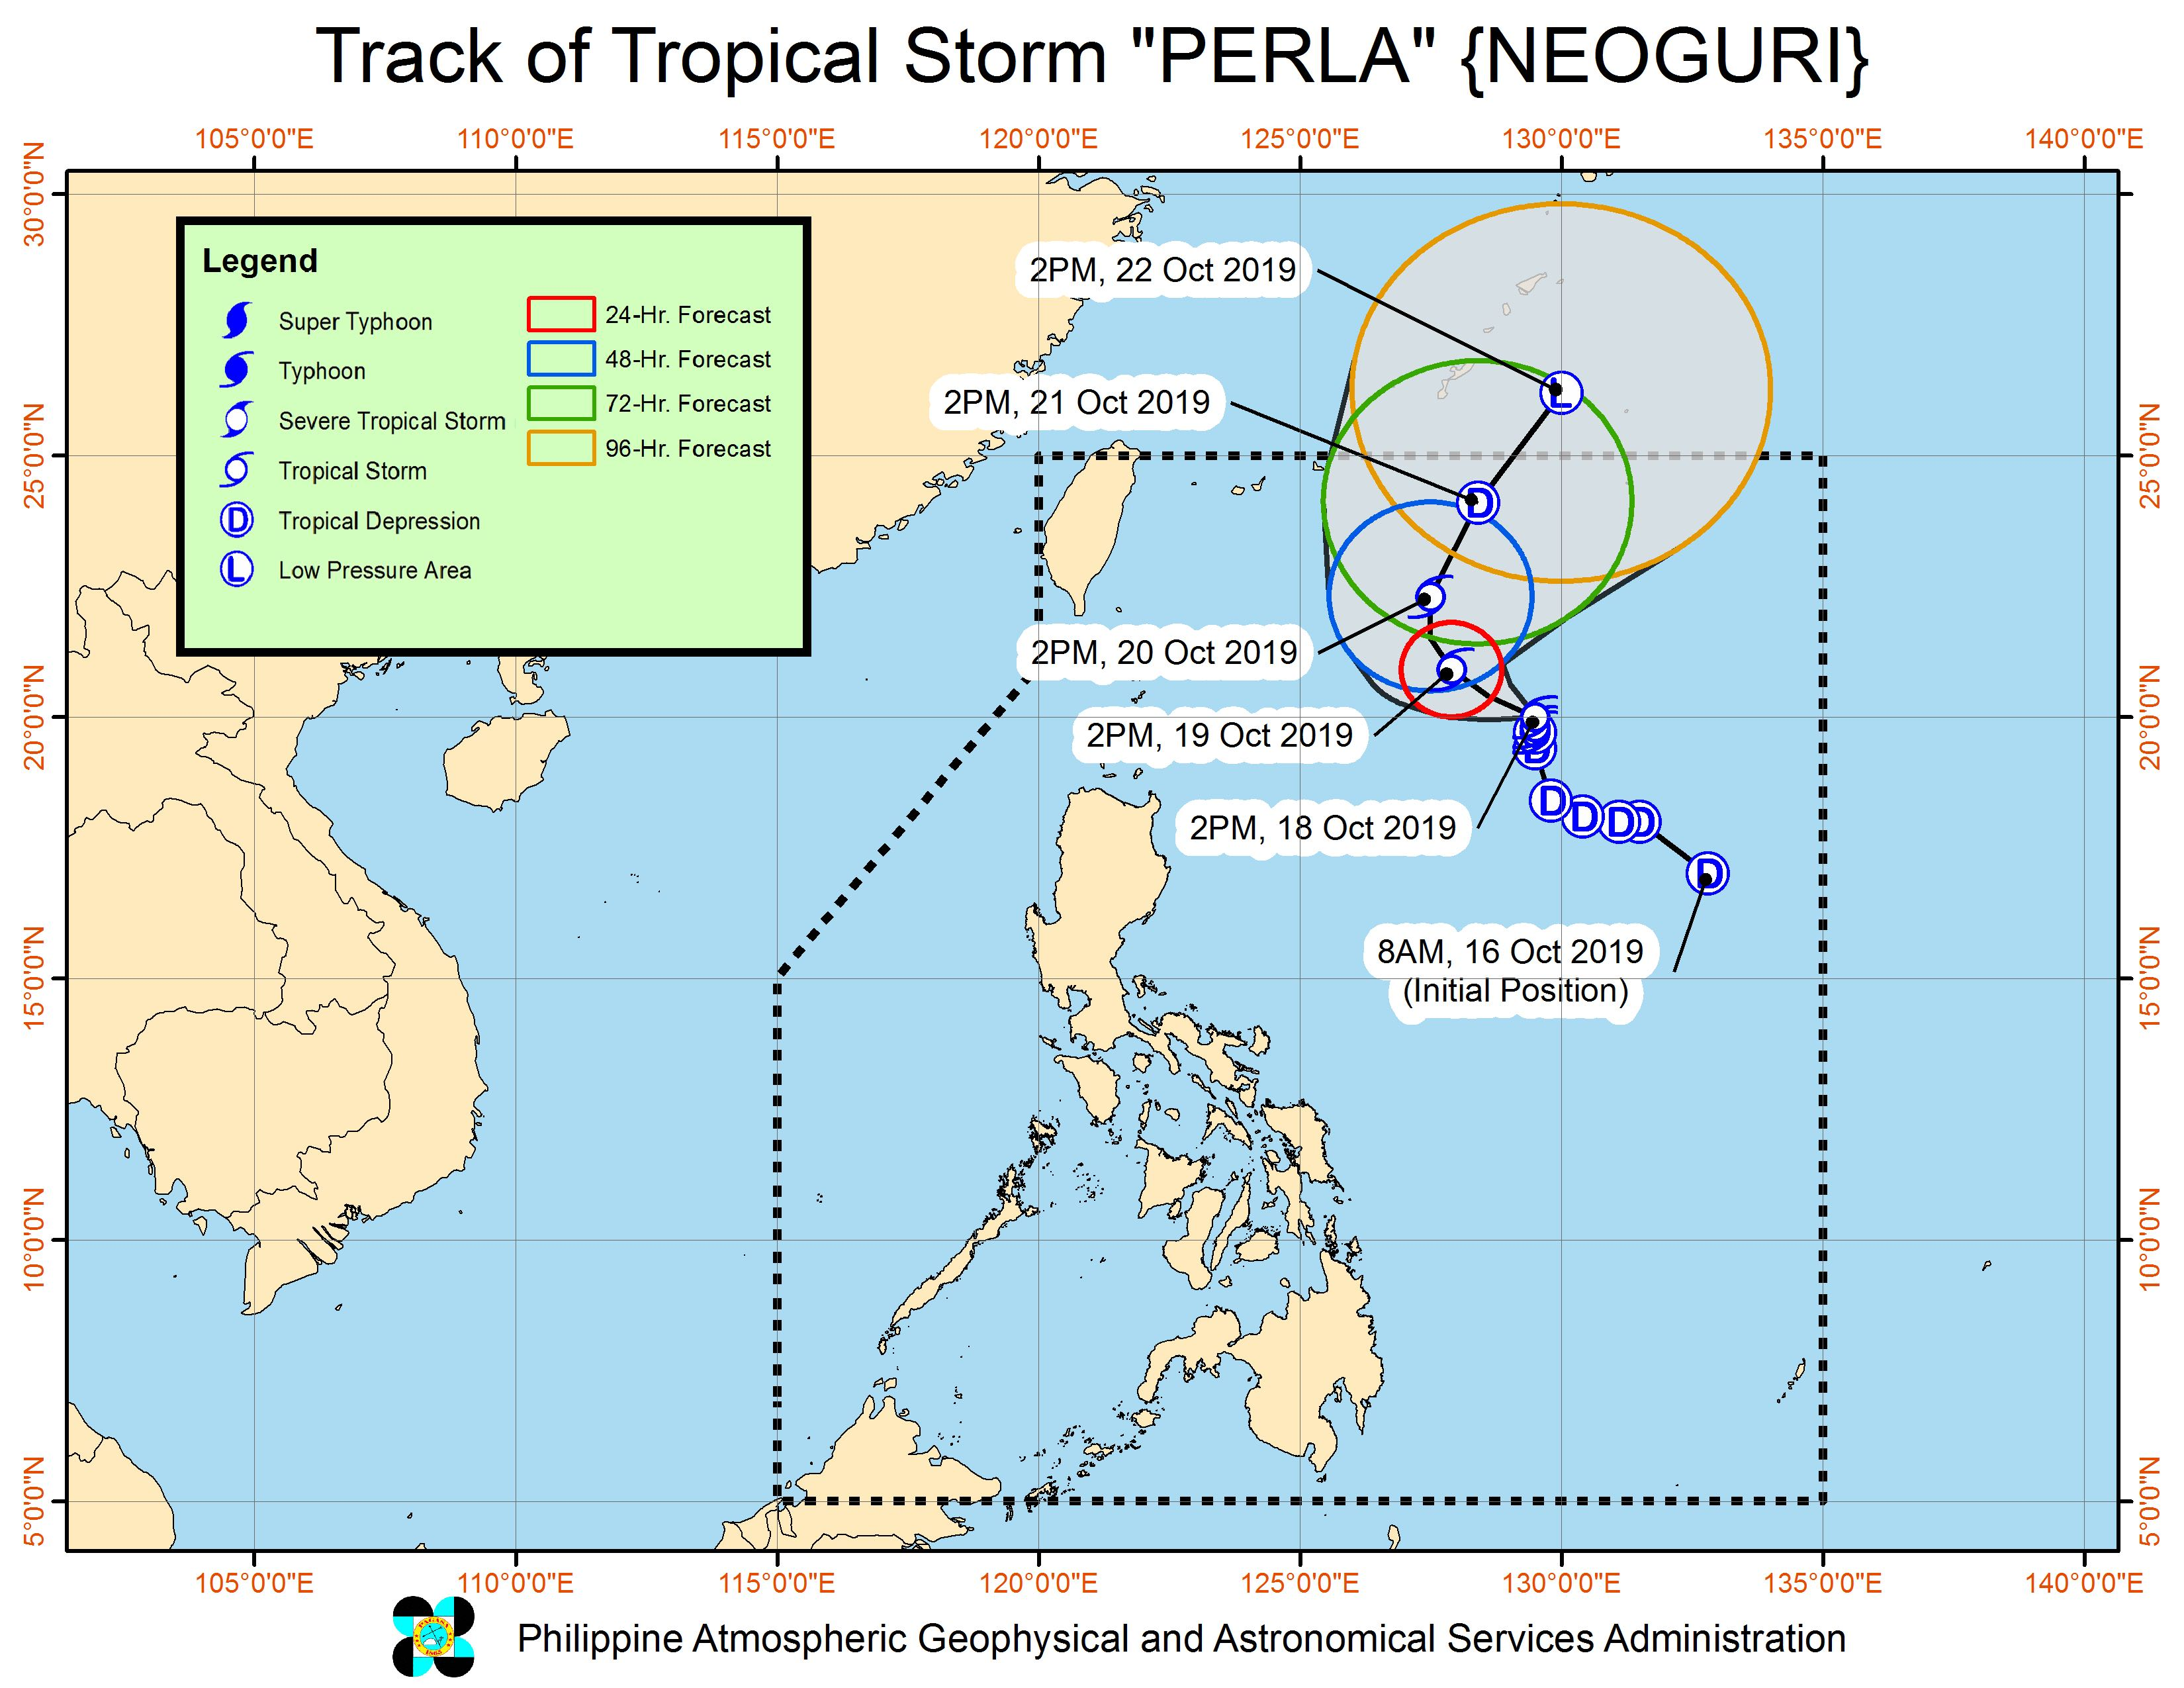 Forecast track of Tropical Storm Perla (Neoguri) as of October 18, 2019, 5 pm. Image from PAGASA